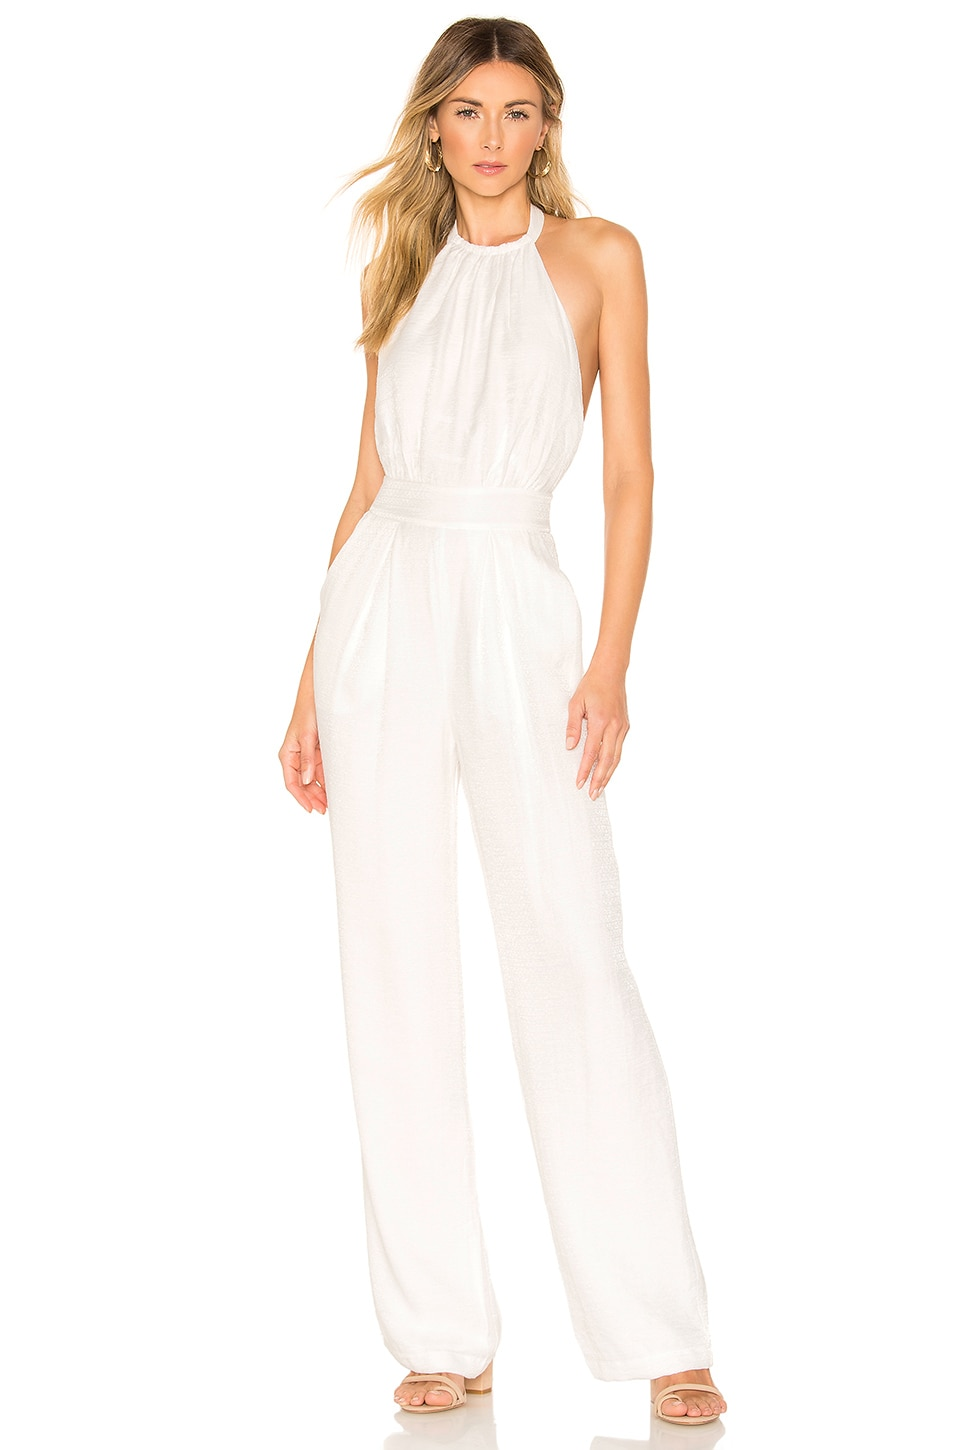 House of Harlow 1960 x REVOLVE Sefina Jumpsuit in White